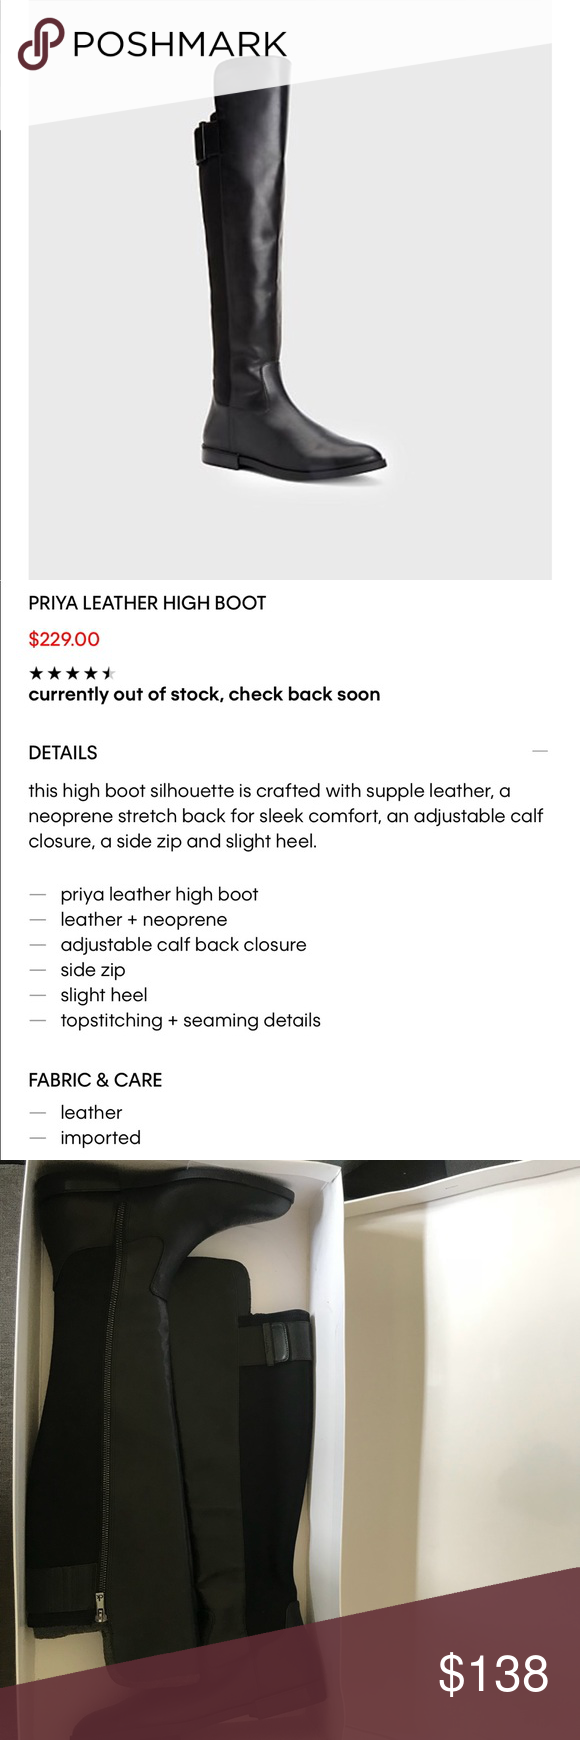 1c7609187d8 ✨Calvin Klein Priya leather high boot✨ Brand new! It will come in the